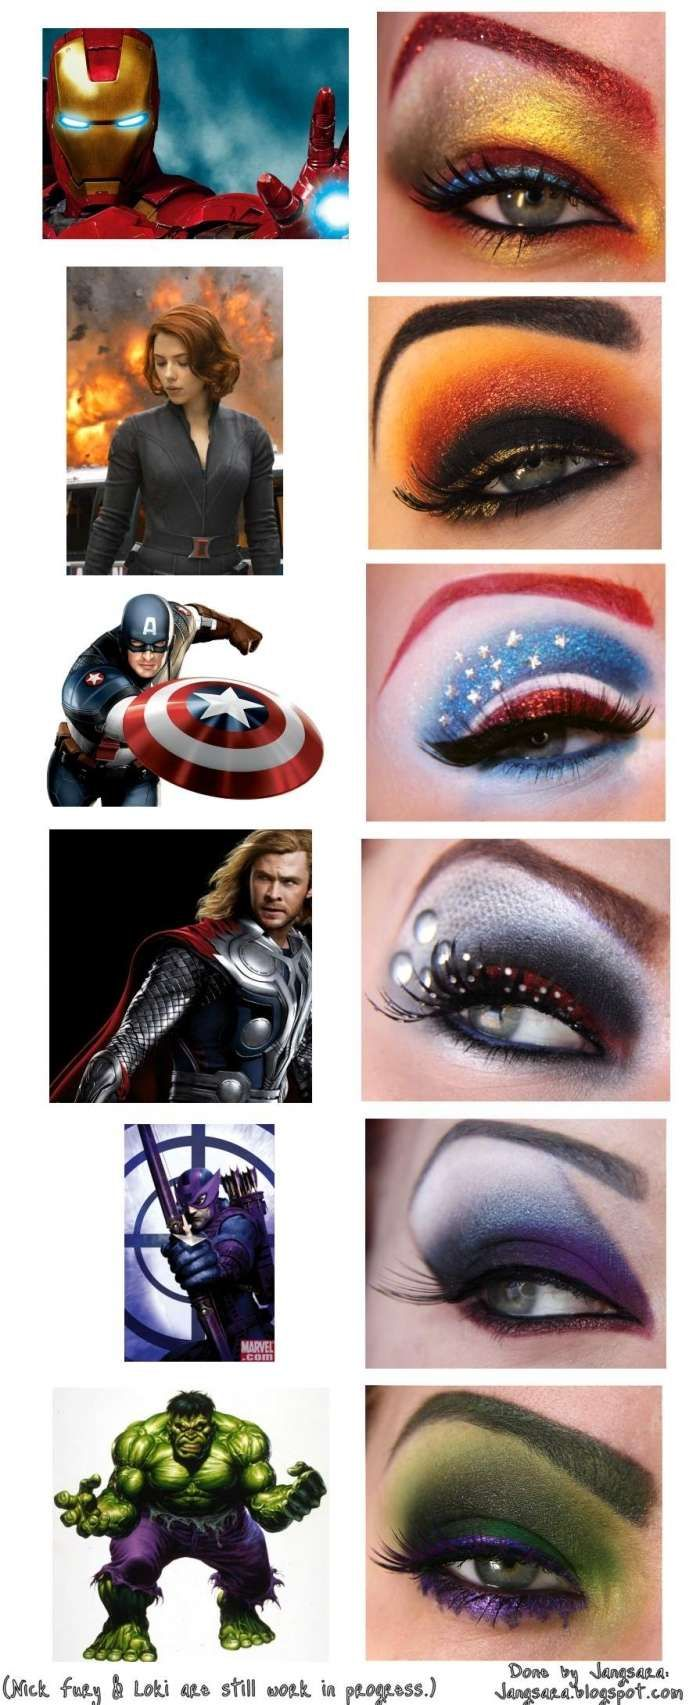 Avengers eye make up. How cool is that? It satisfies my love of make up and all…